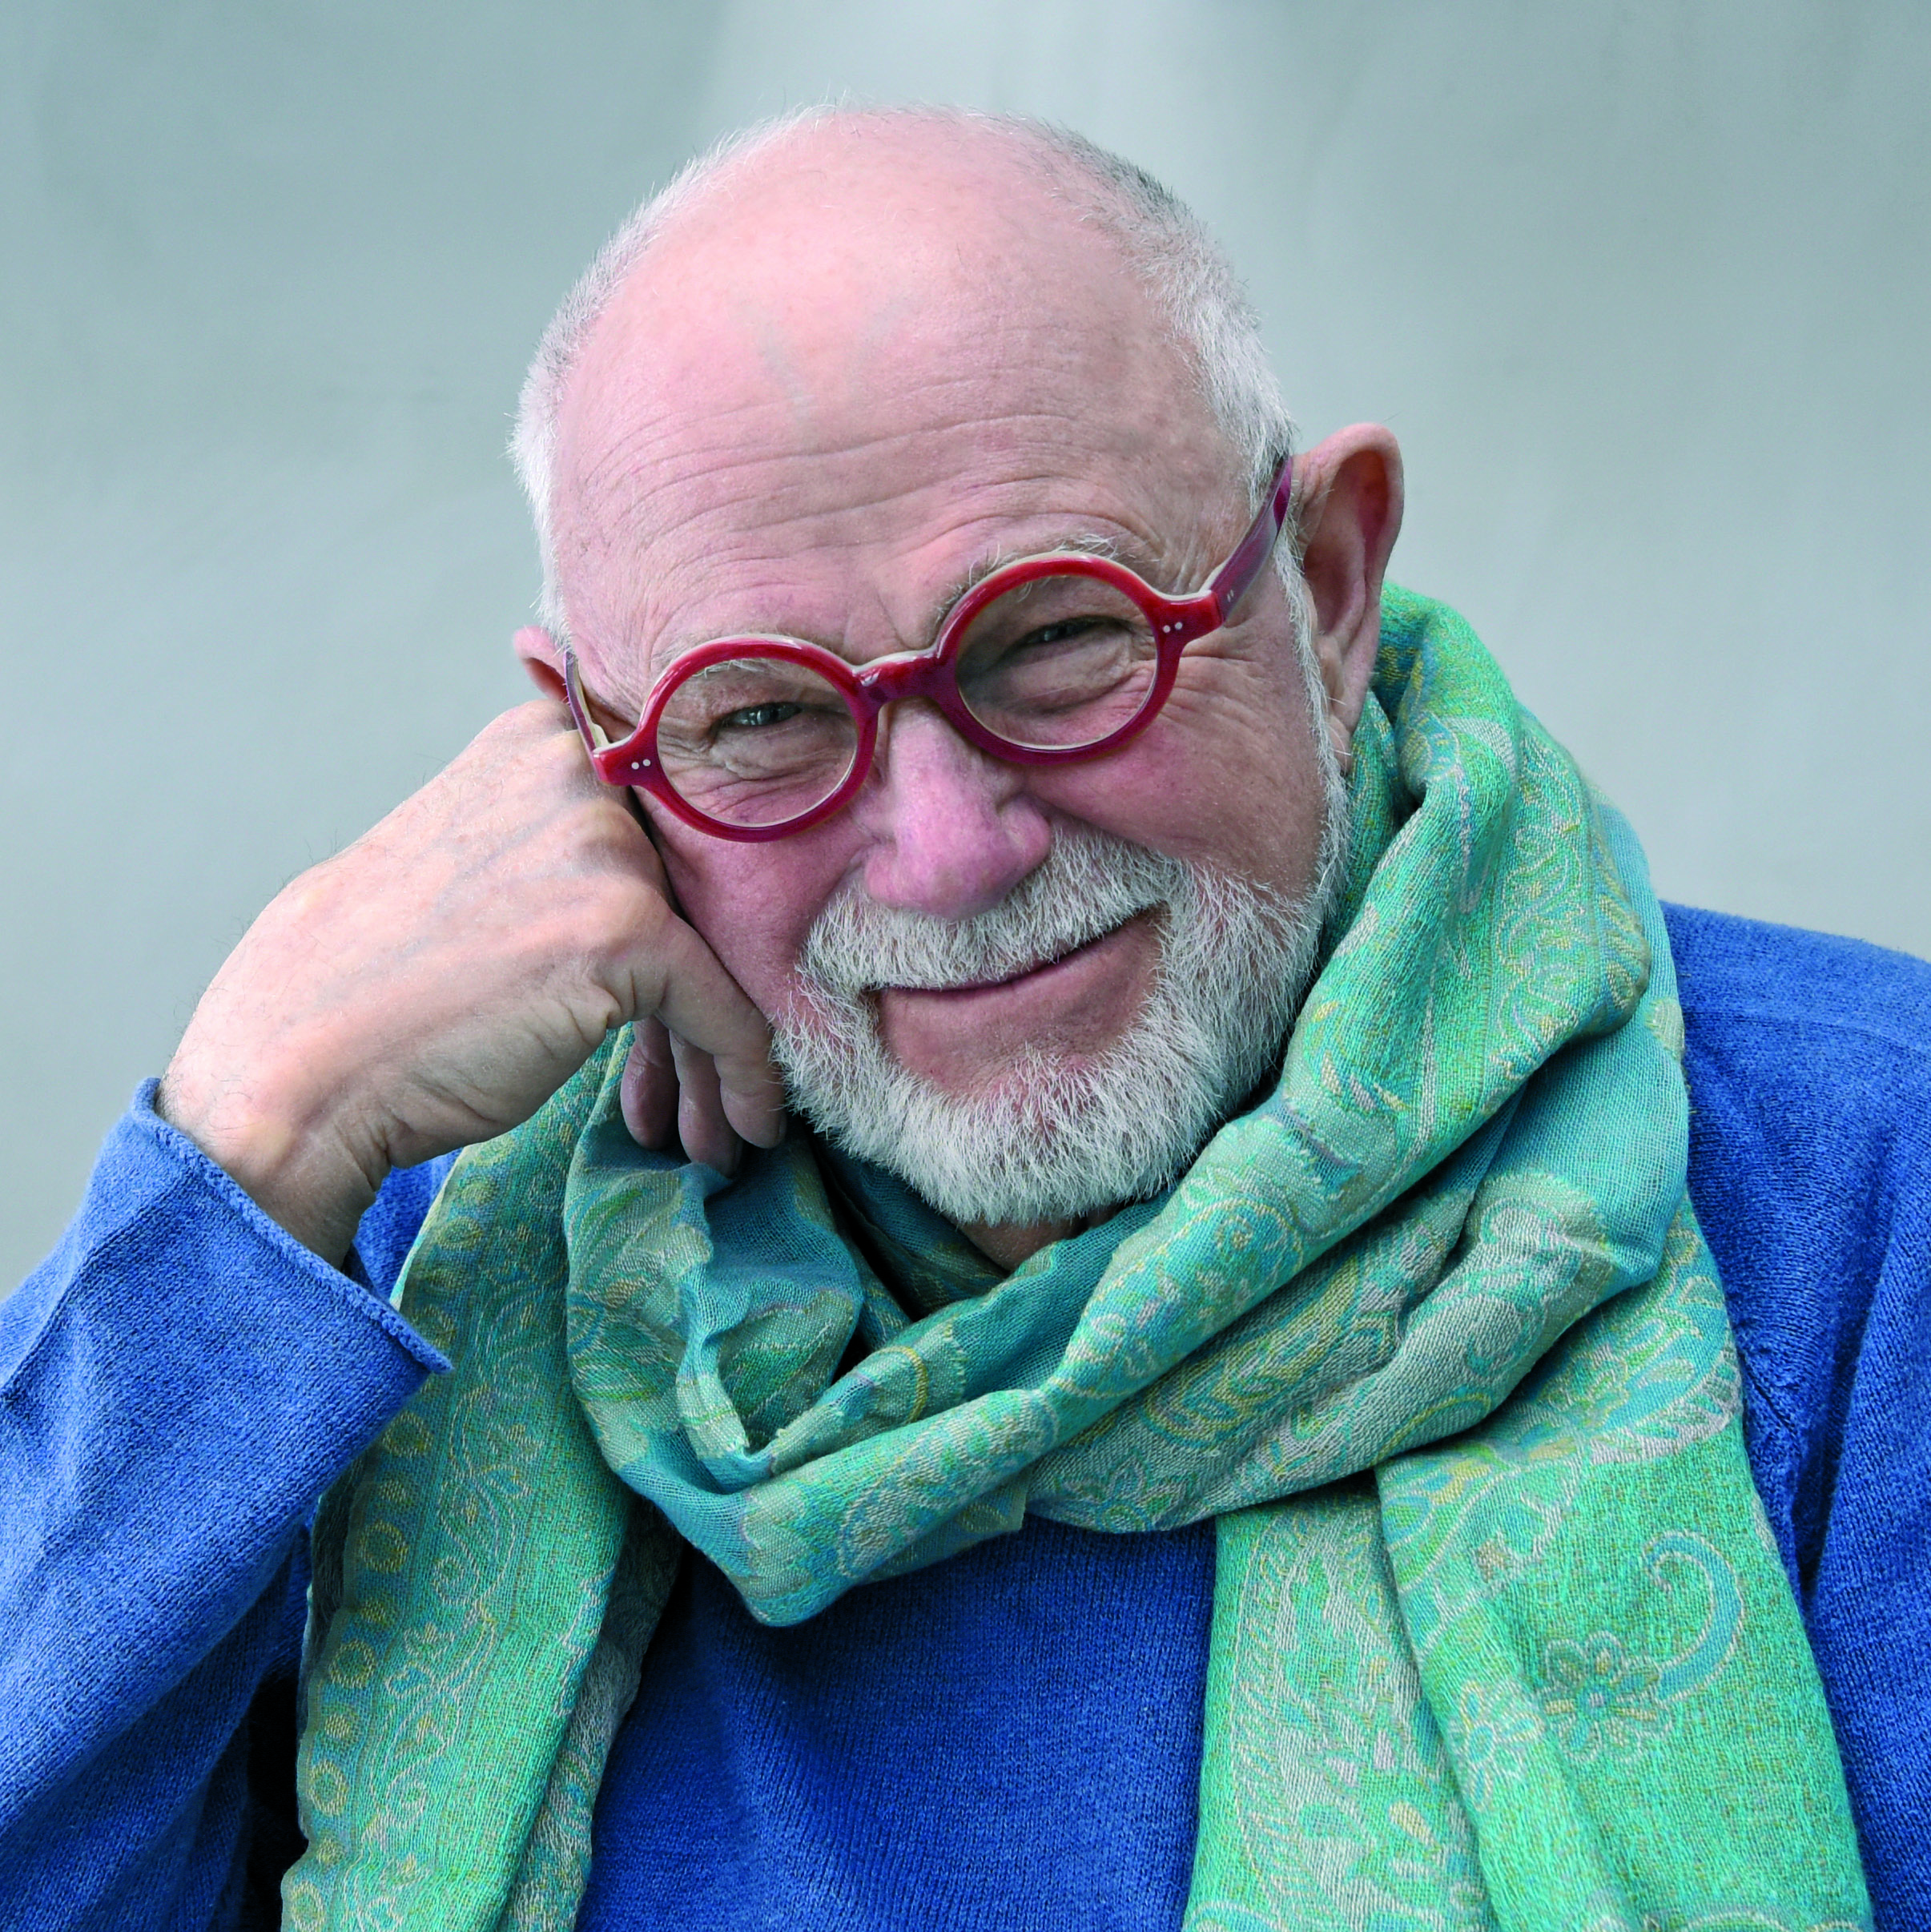 Tomie depaola author clipart graphic royalty free library Quiet | Book by Tomie dePaola | Official Publisher Page ... graphic royalty free library